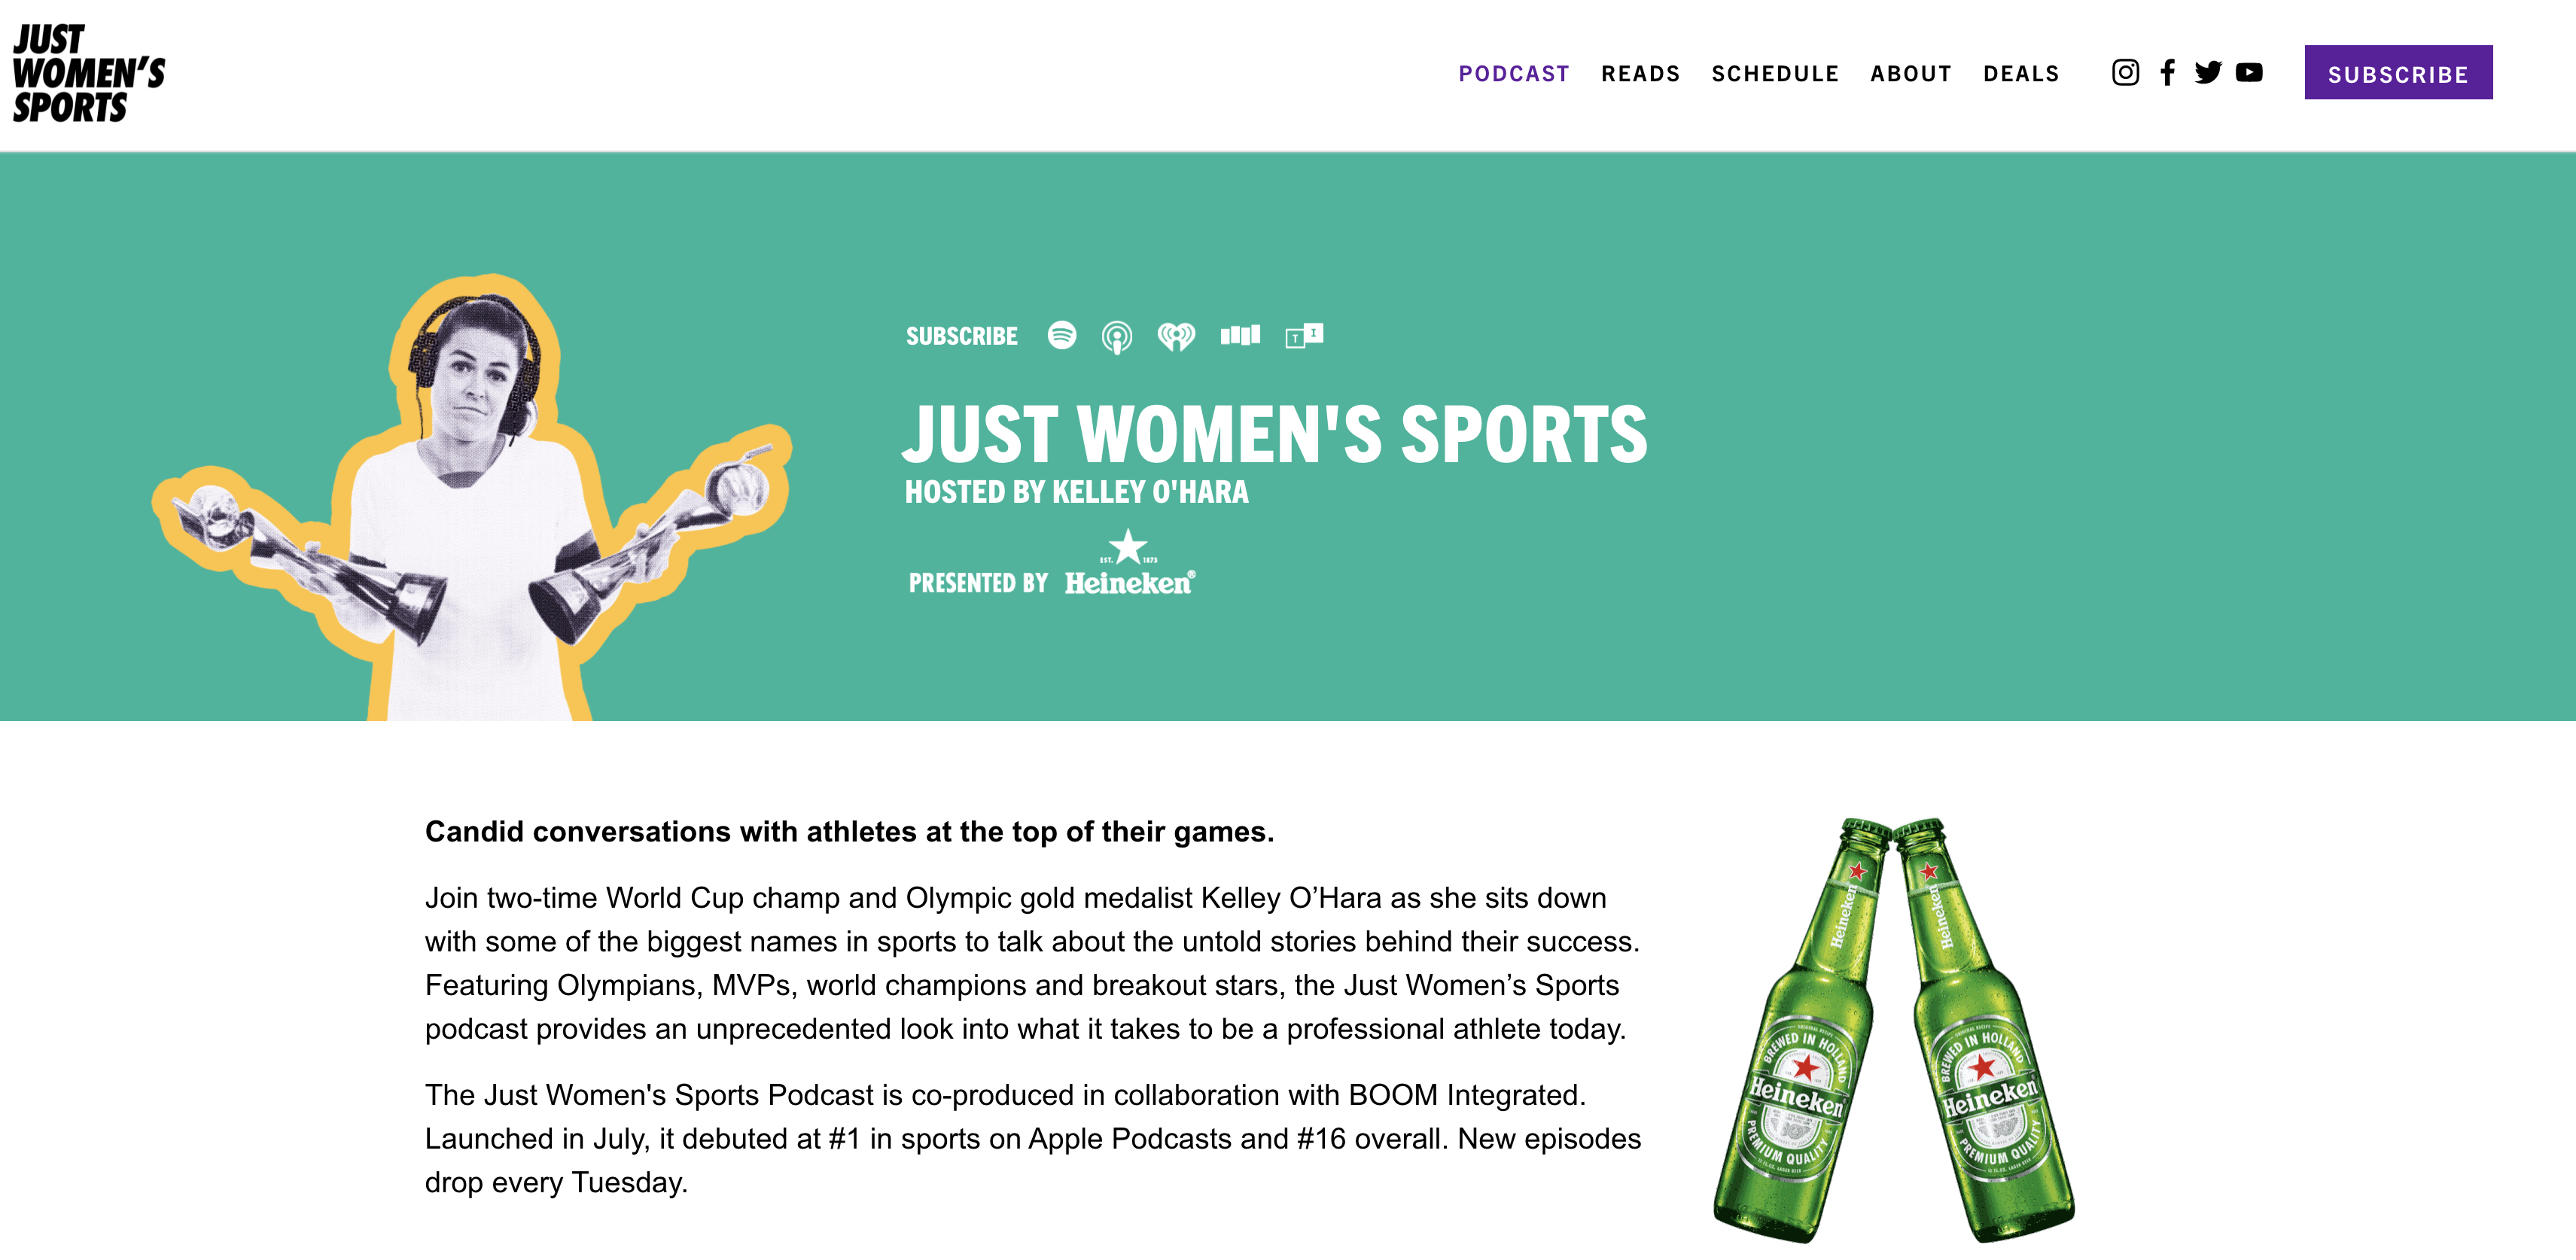 Just Women's Sports podcast